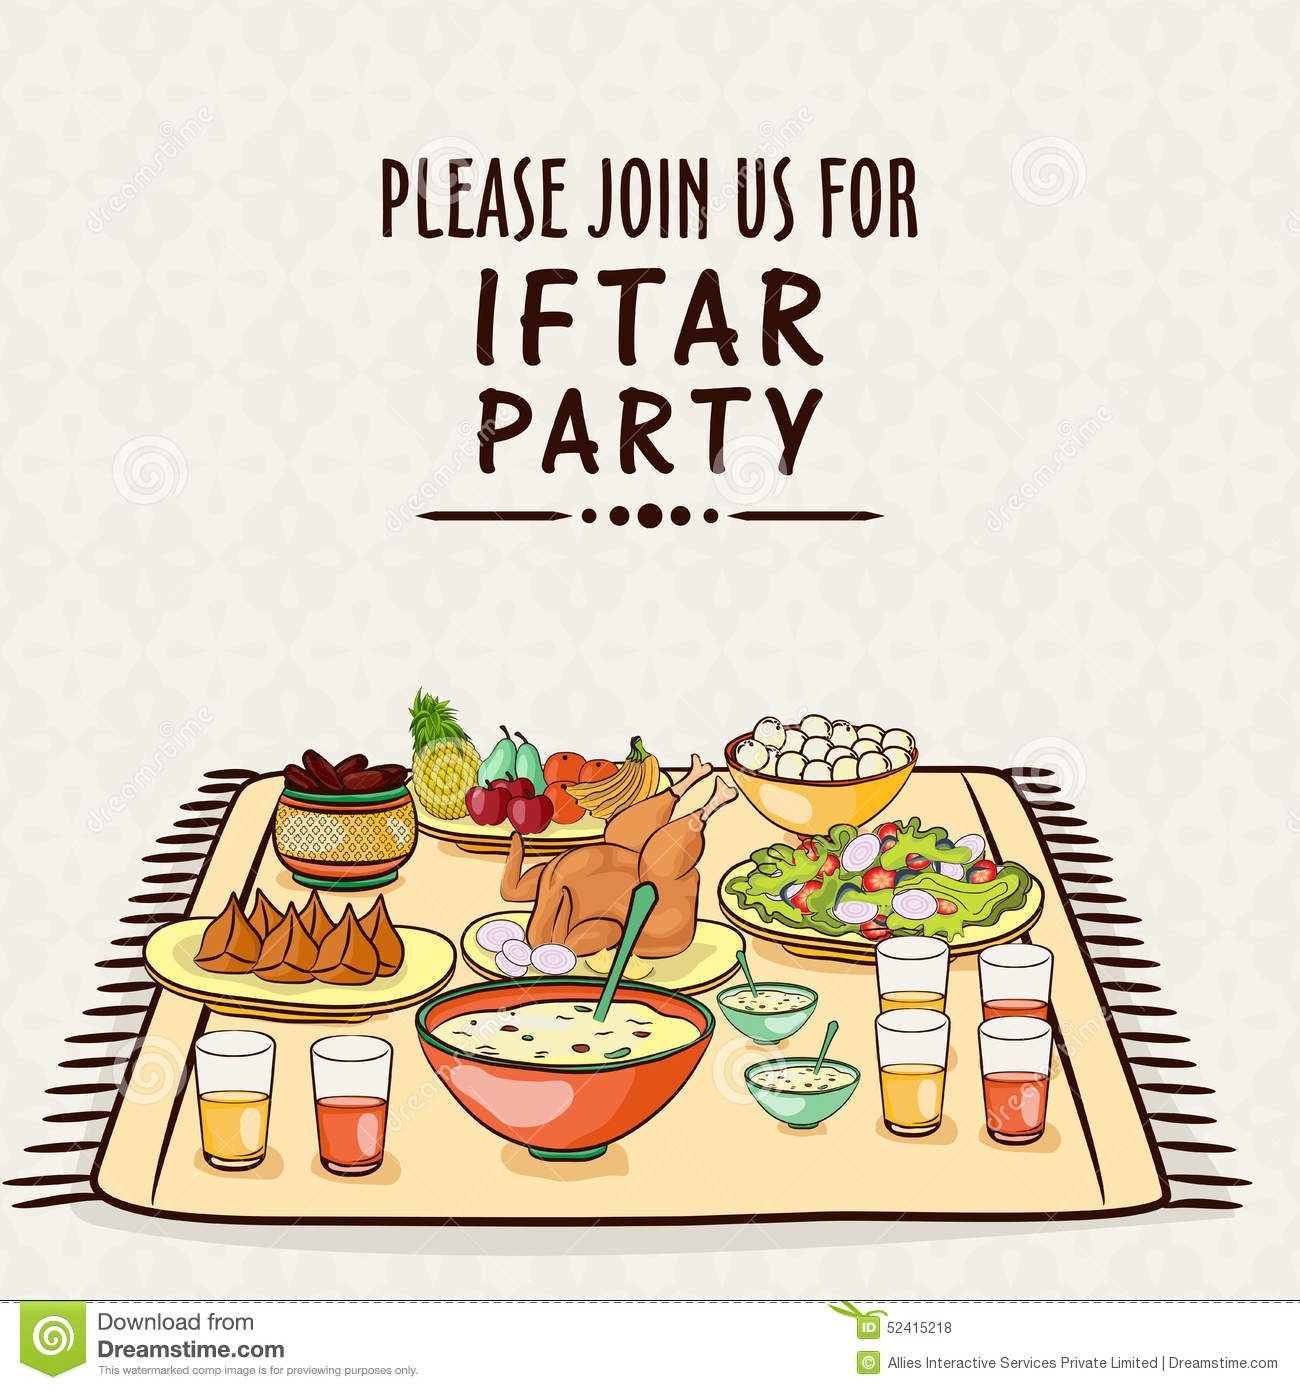 Invitation card for ramadan kareem iftar party celebration invitation card for ramadan kareem iftar party celebration download from over 44 million high quality stock photos images vectors stopboris Gallery